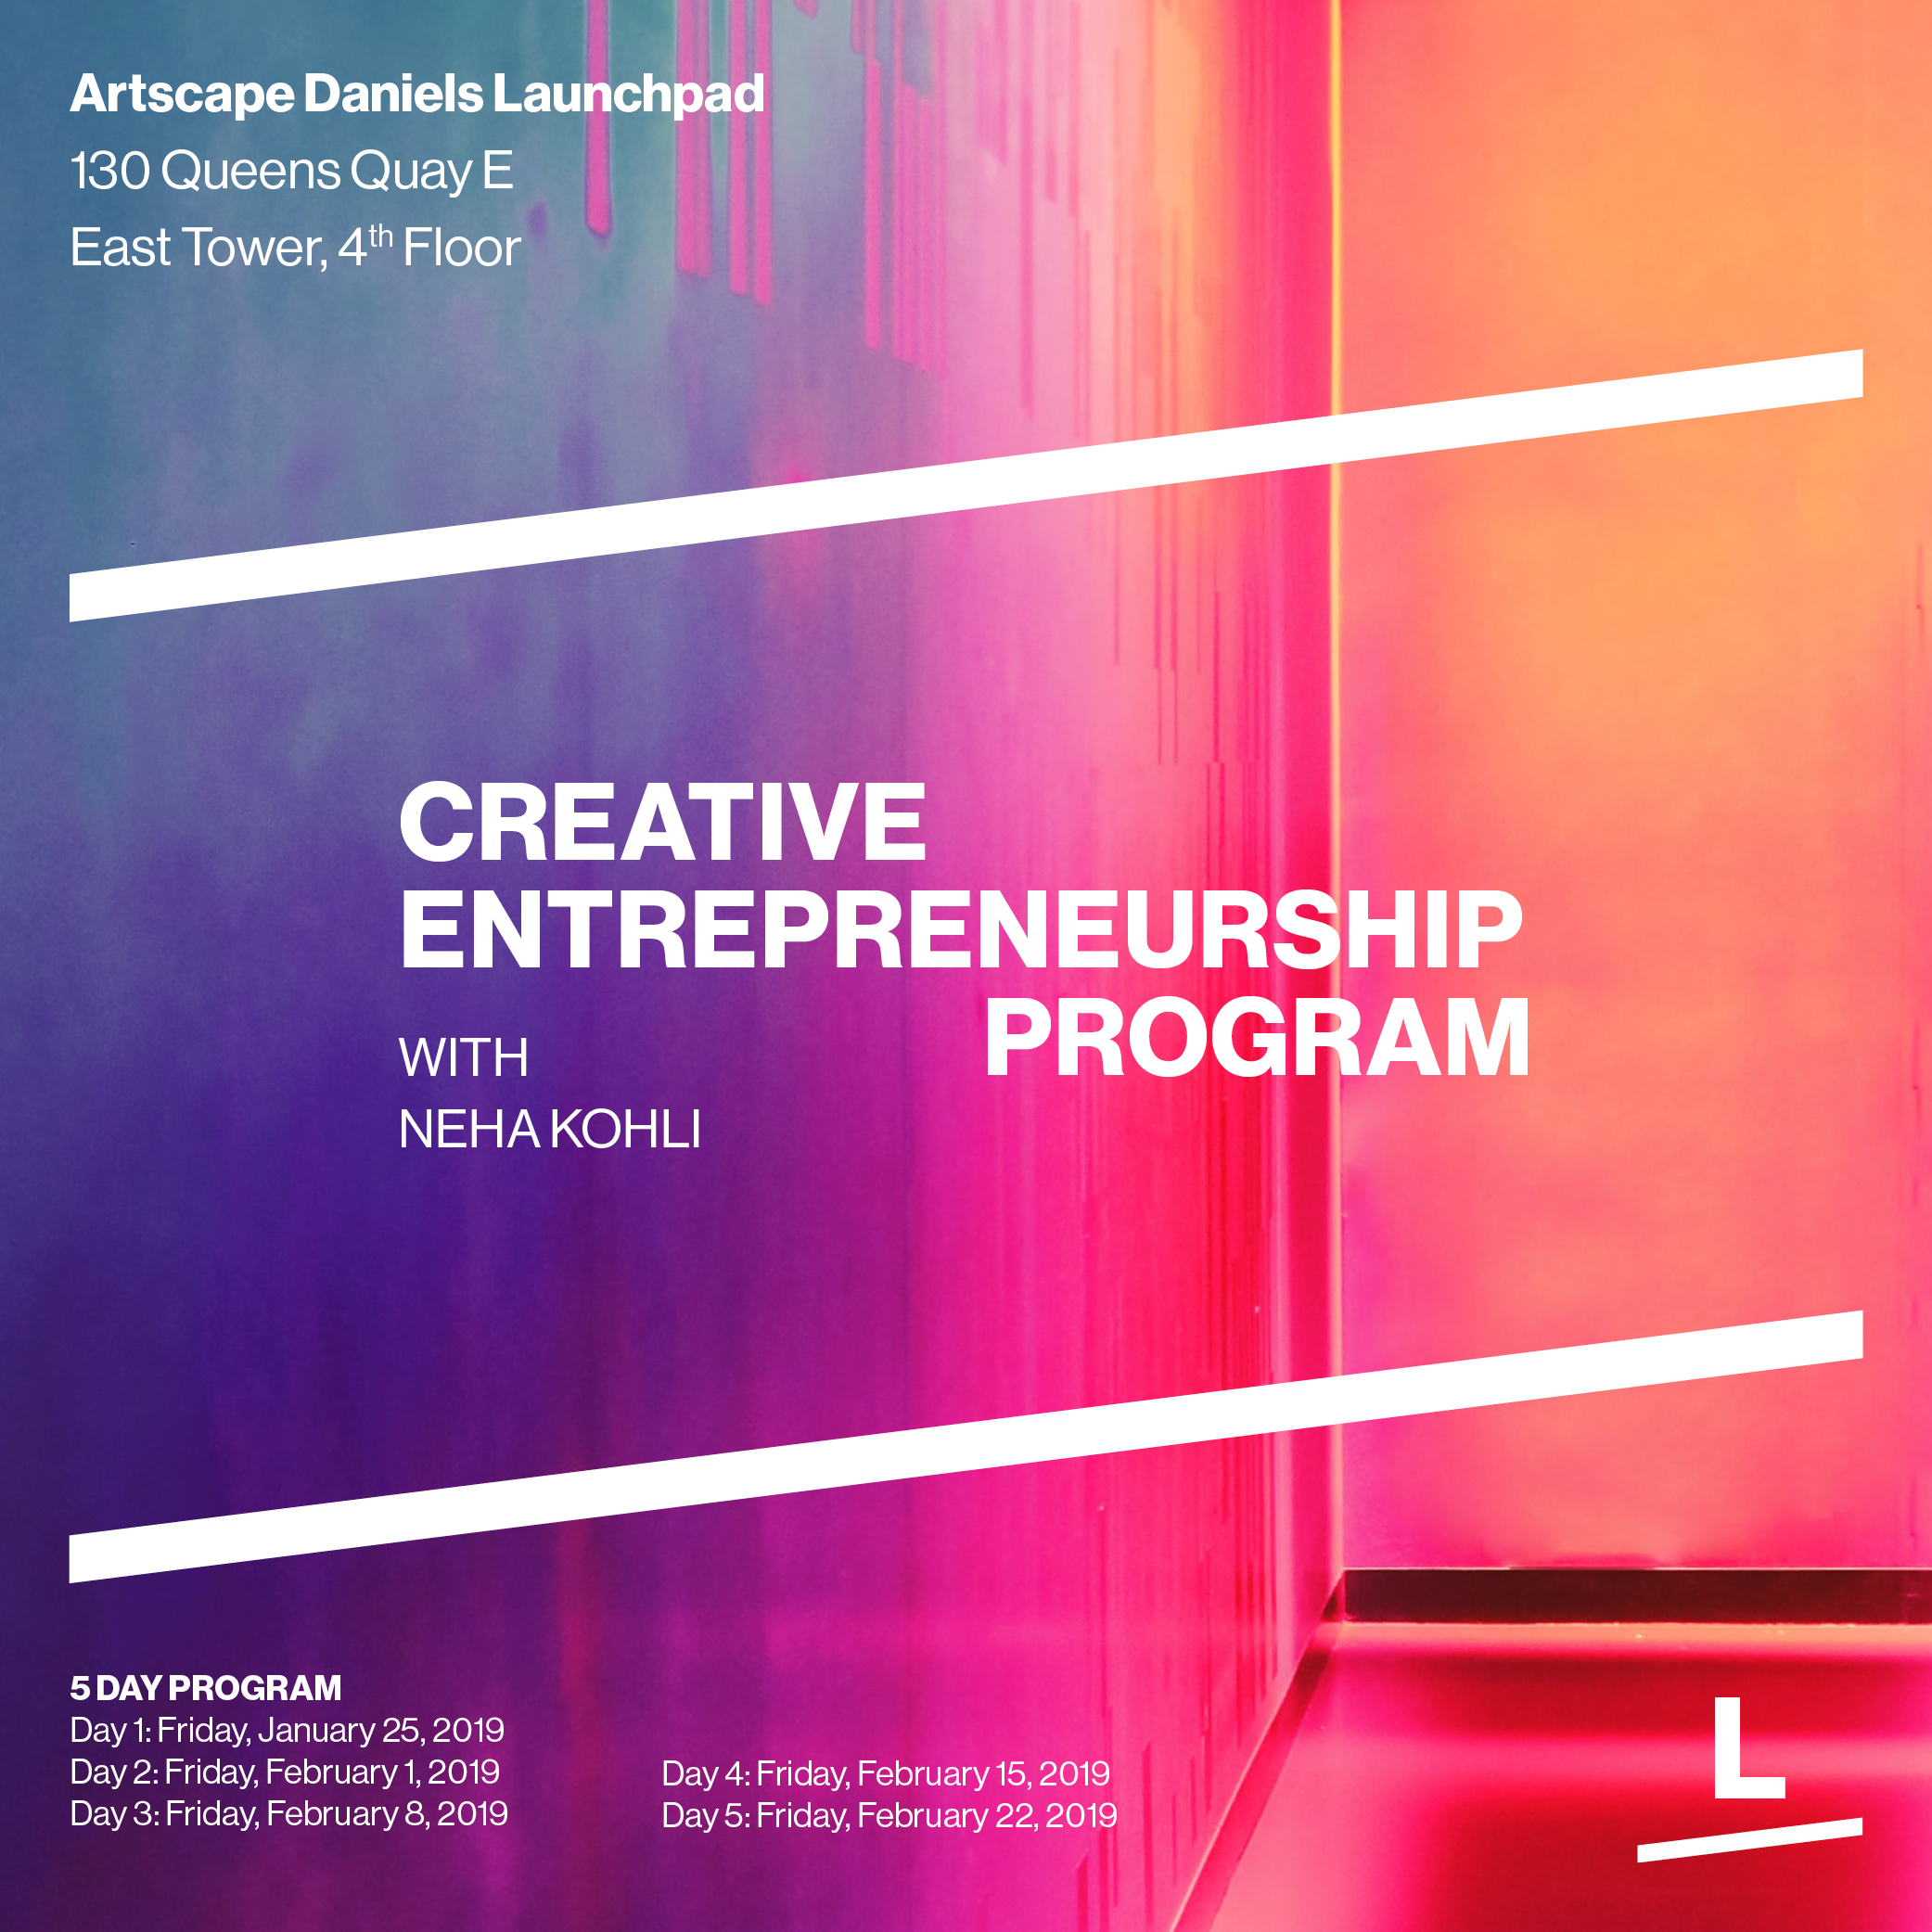 Creative Entrepreneurship Program